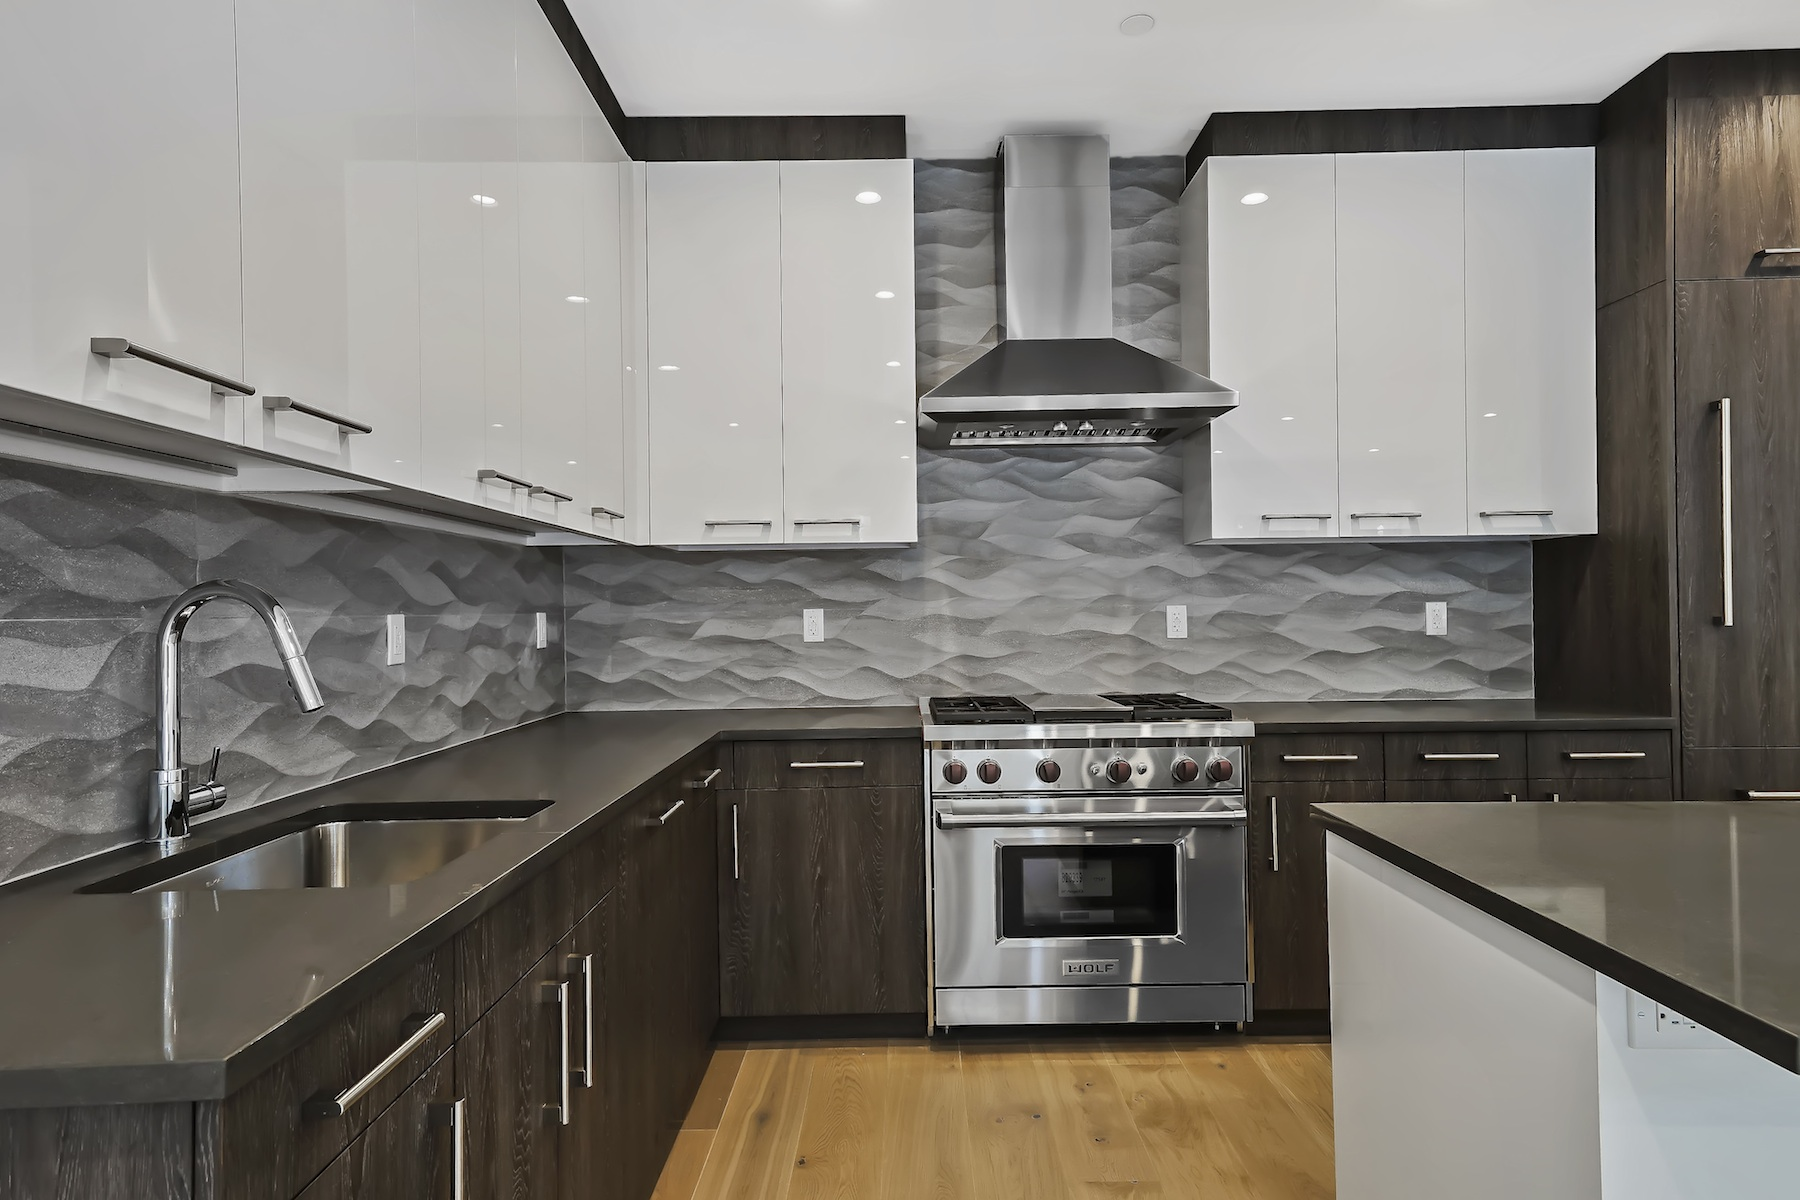 Additional photo for property listing at 84 Oak 84 Oak Street 1A Brooklyn, New York 11222 United States